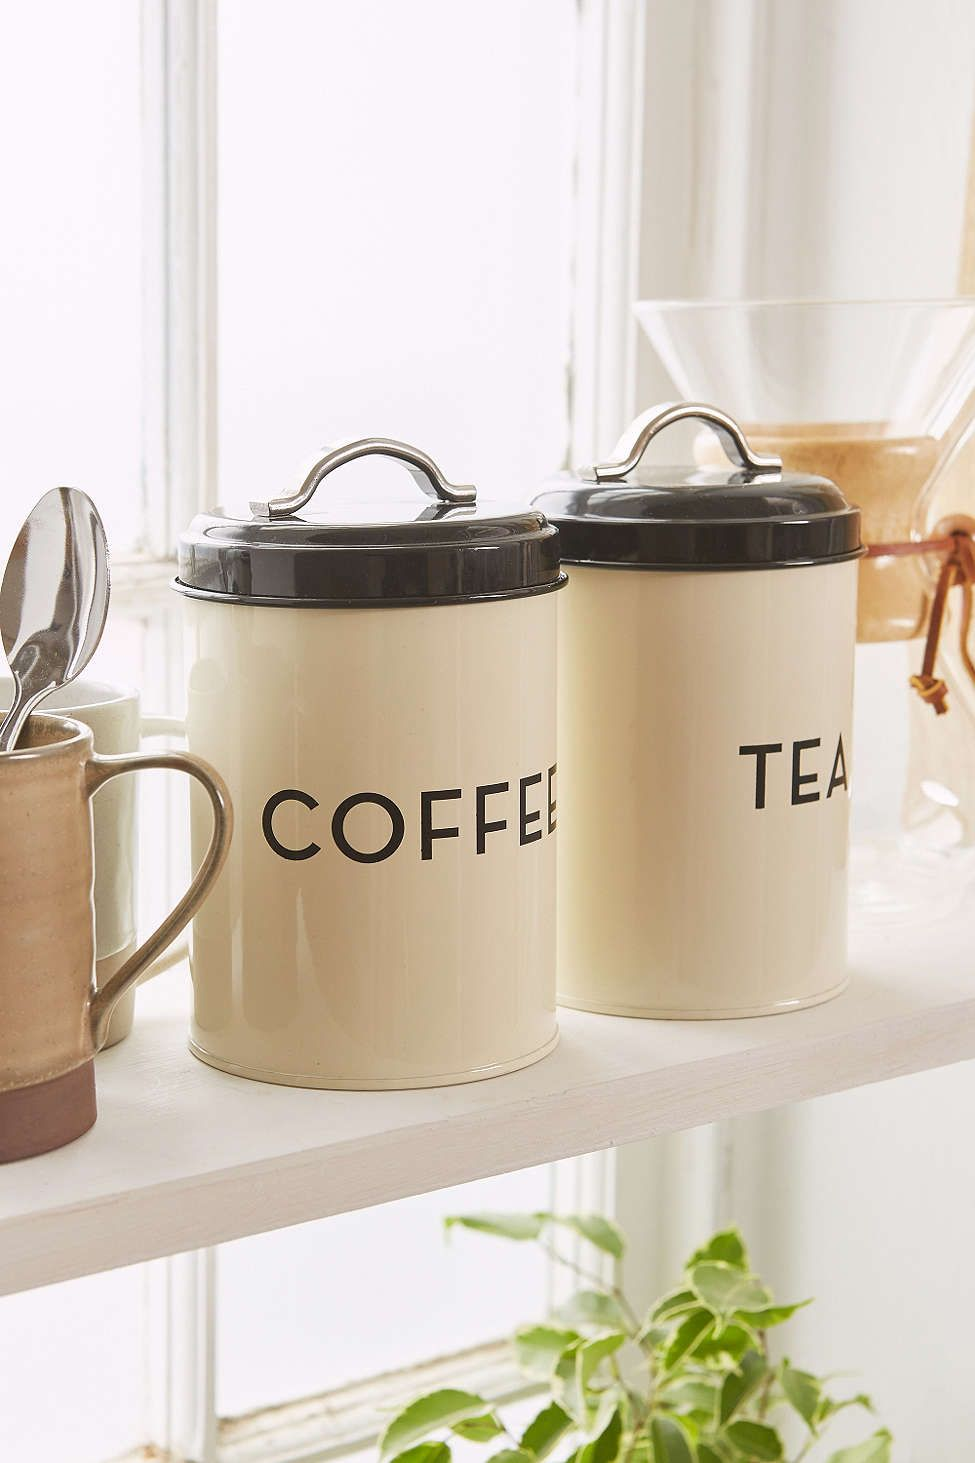 Tea Storage Tin Urban Outfitters Let39s Drink